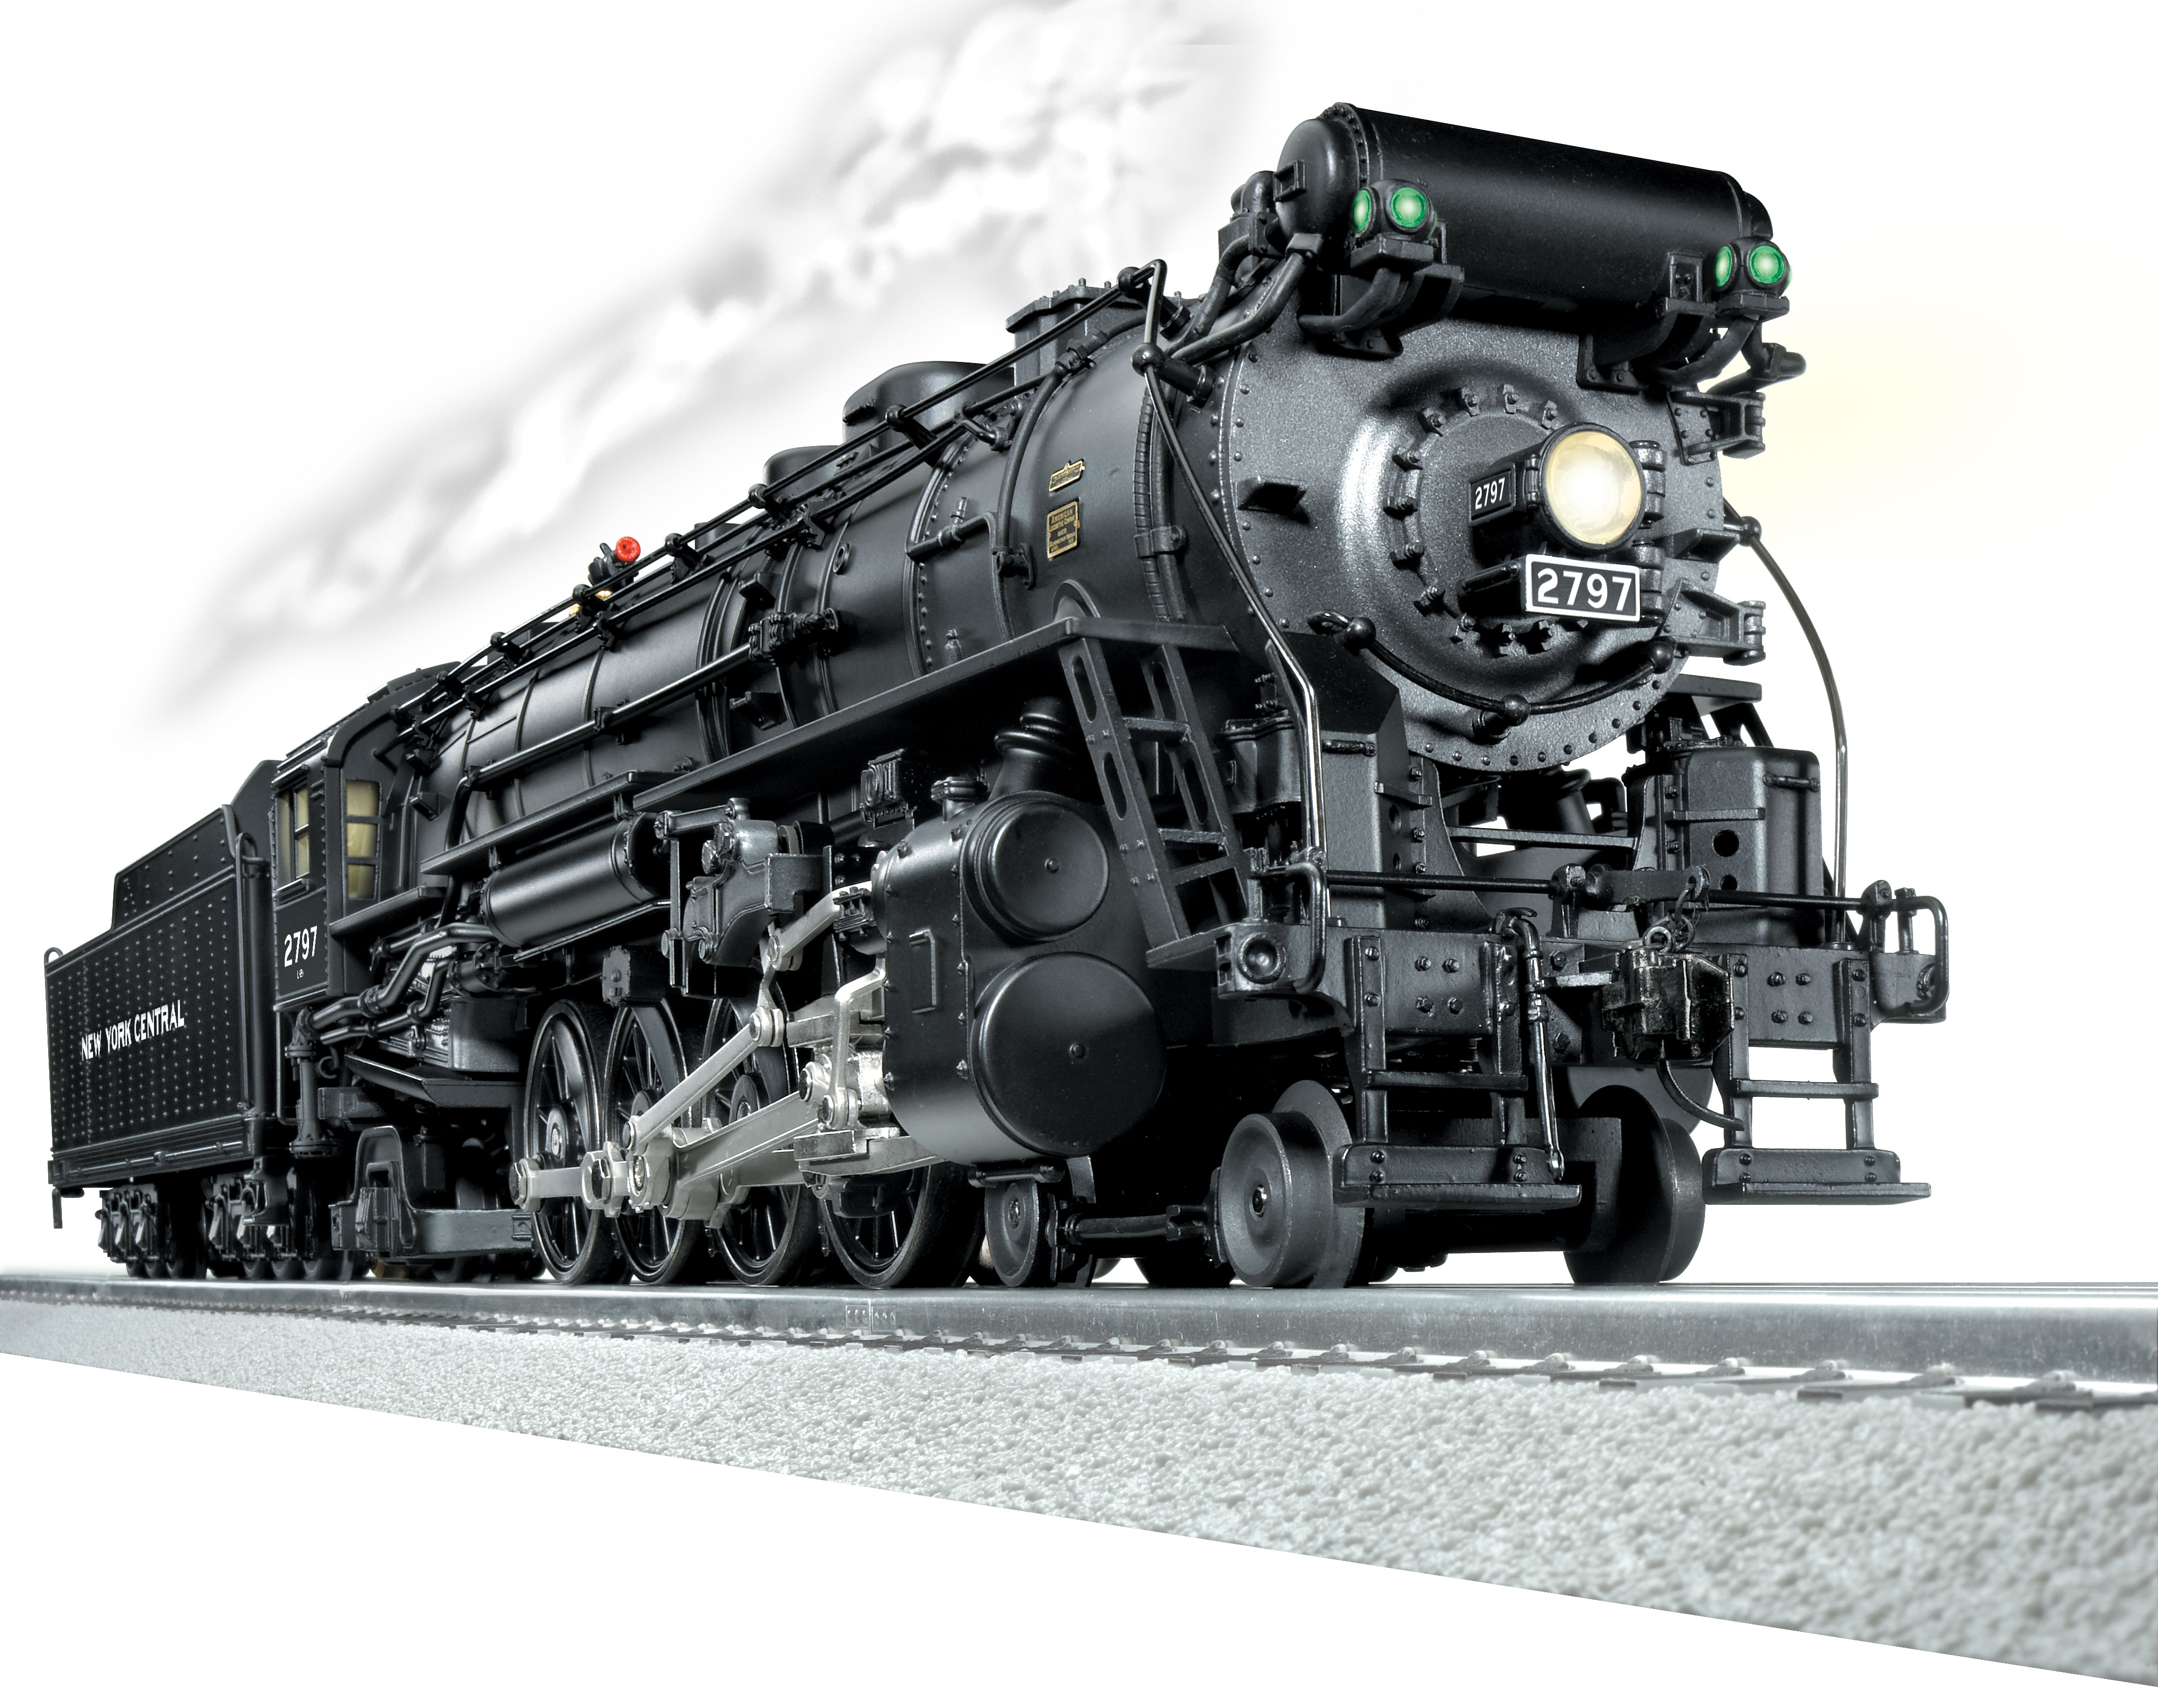 6 11412 mohawkdramaflt?w=300&h=237 new products lionel trains  at panicattacktreatment.co